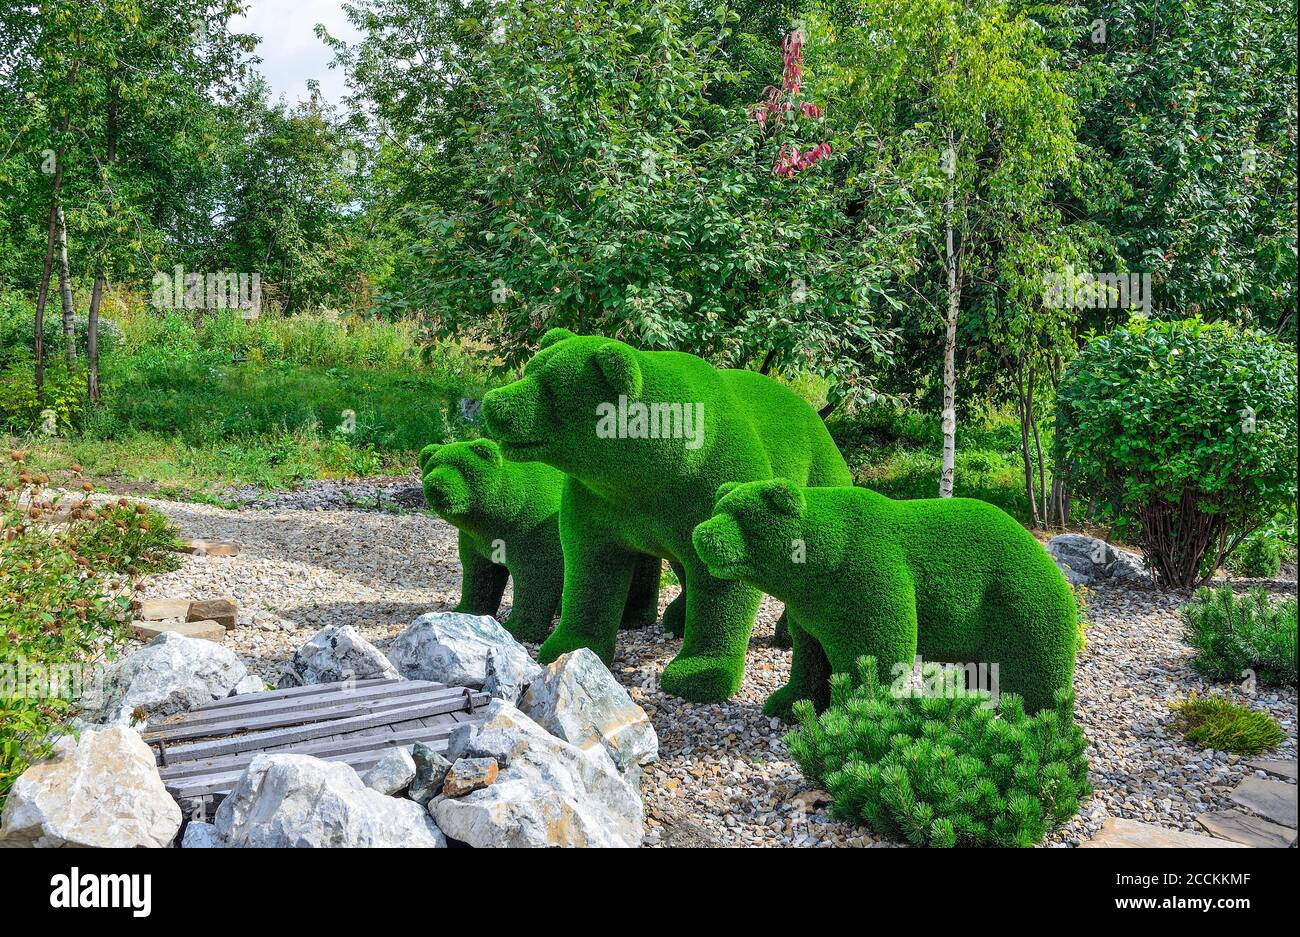 Green Sculptures Of Big And Two Small Bears Created From Artificial Grass Gardens Topiary Creative Idea For Landscape Design Stone Garden Dwarf M Stock Photo Alamy